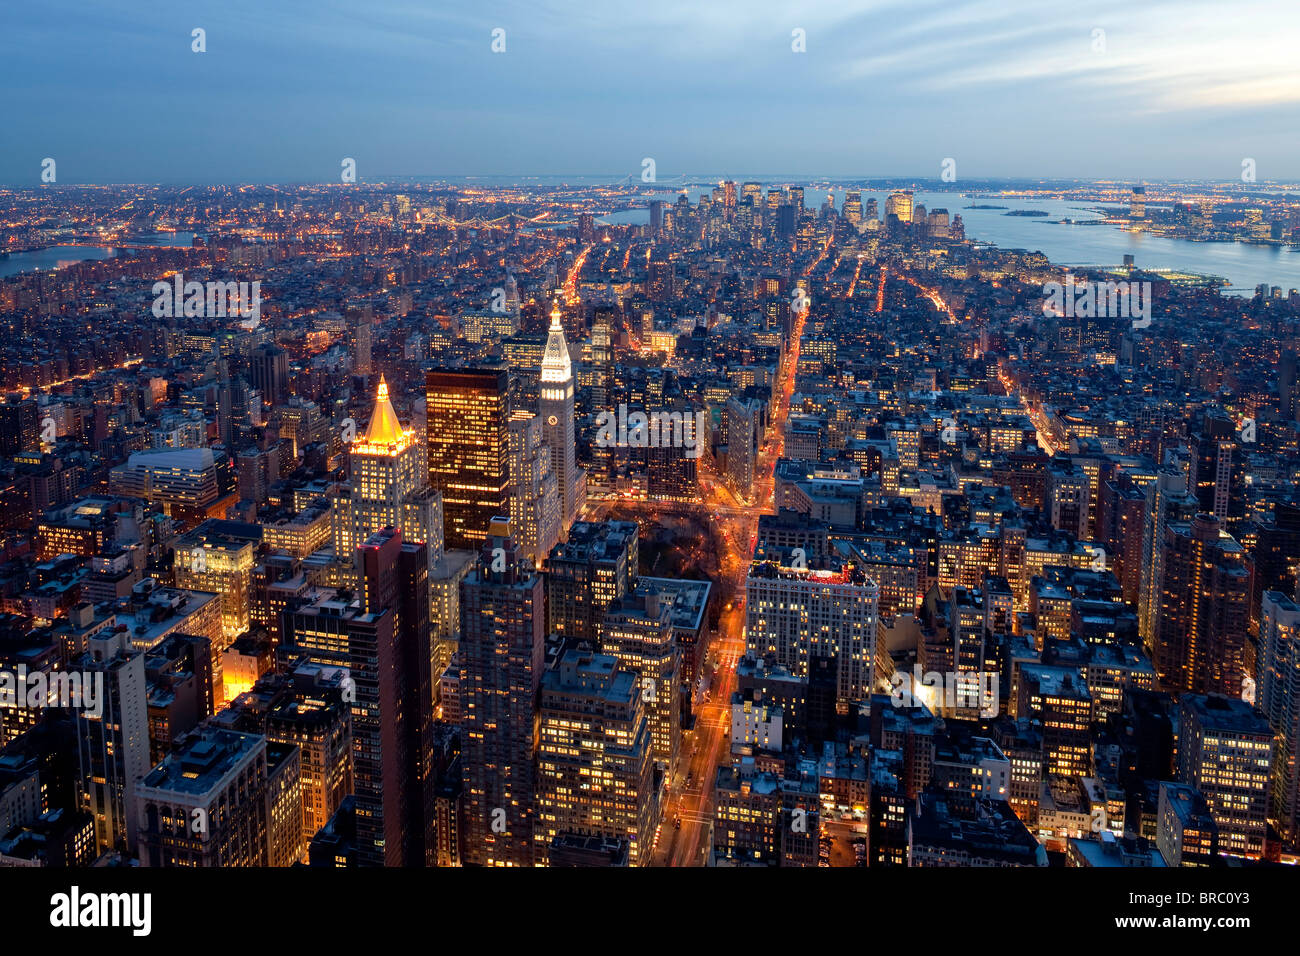 Elevated view of Mid-town Manhattan at dusk, New York City, New York, USA Stock Photo